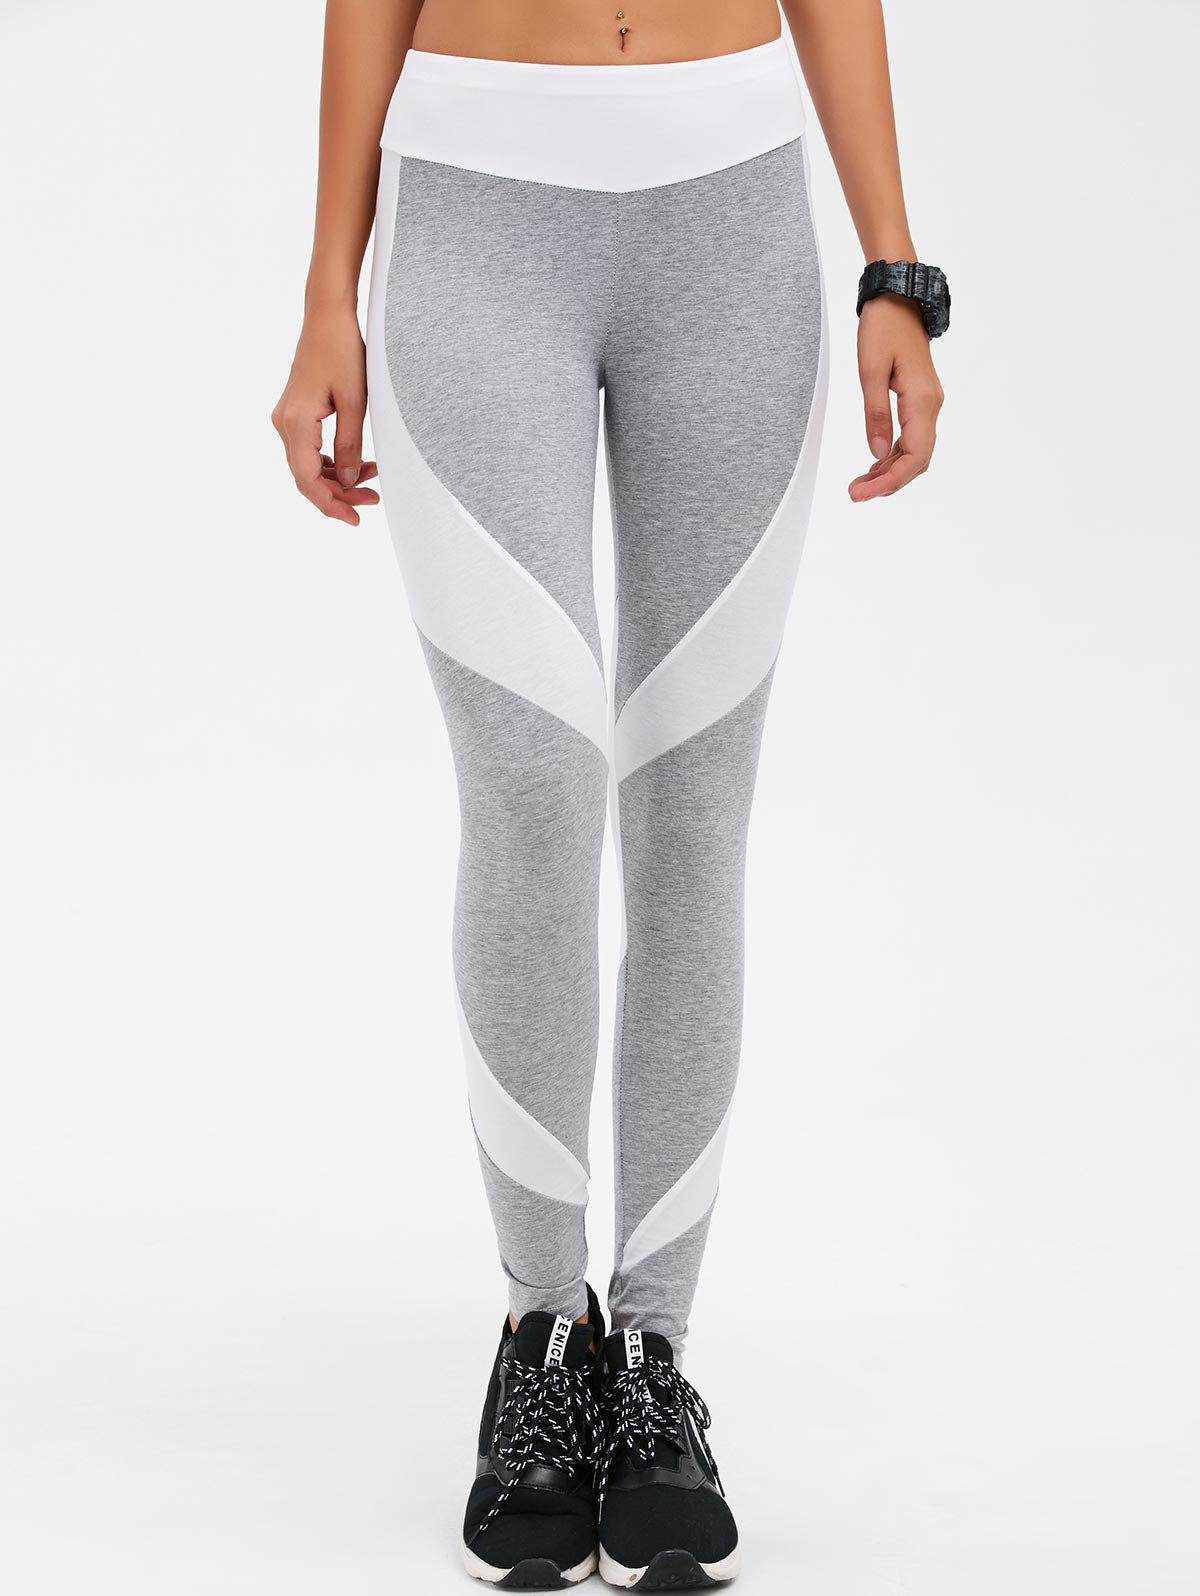 Stretchy Contrast Athletic Pants - LIGHT GRAY M